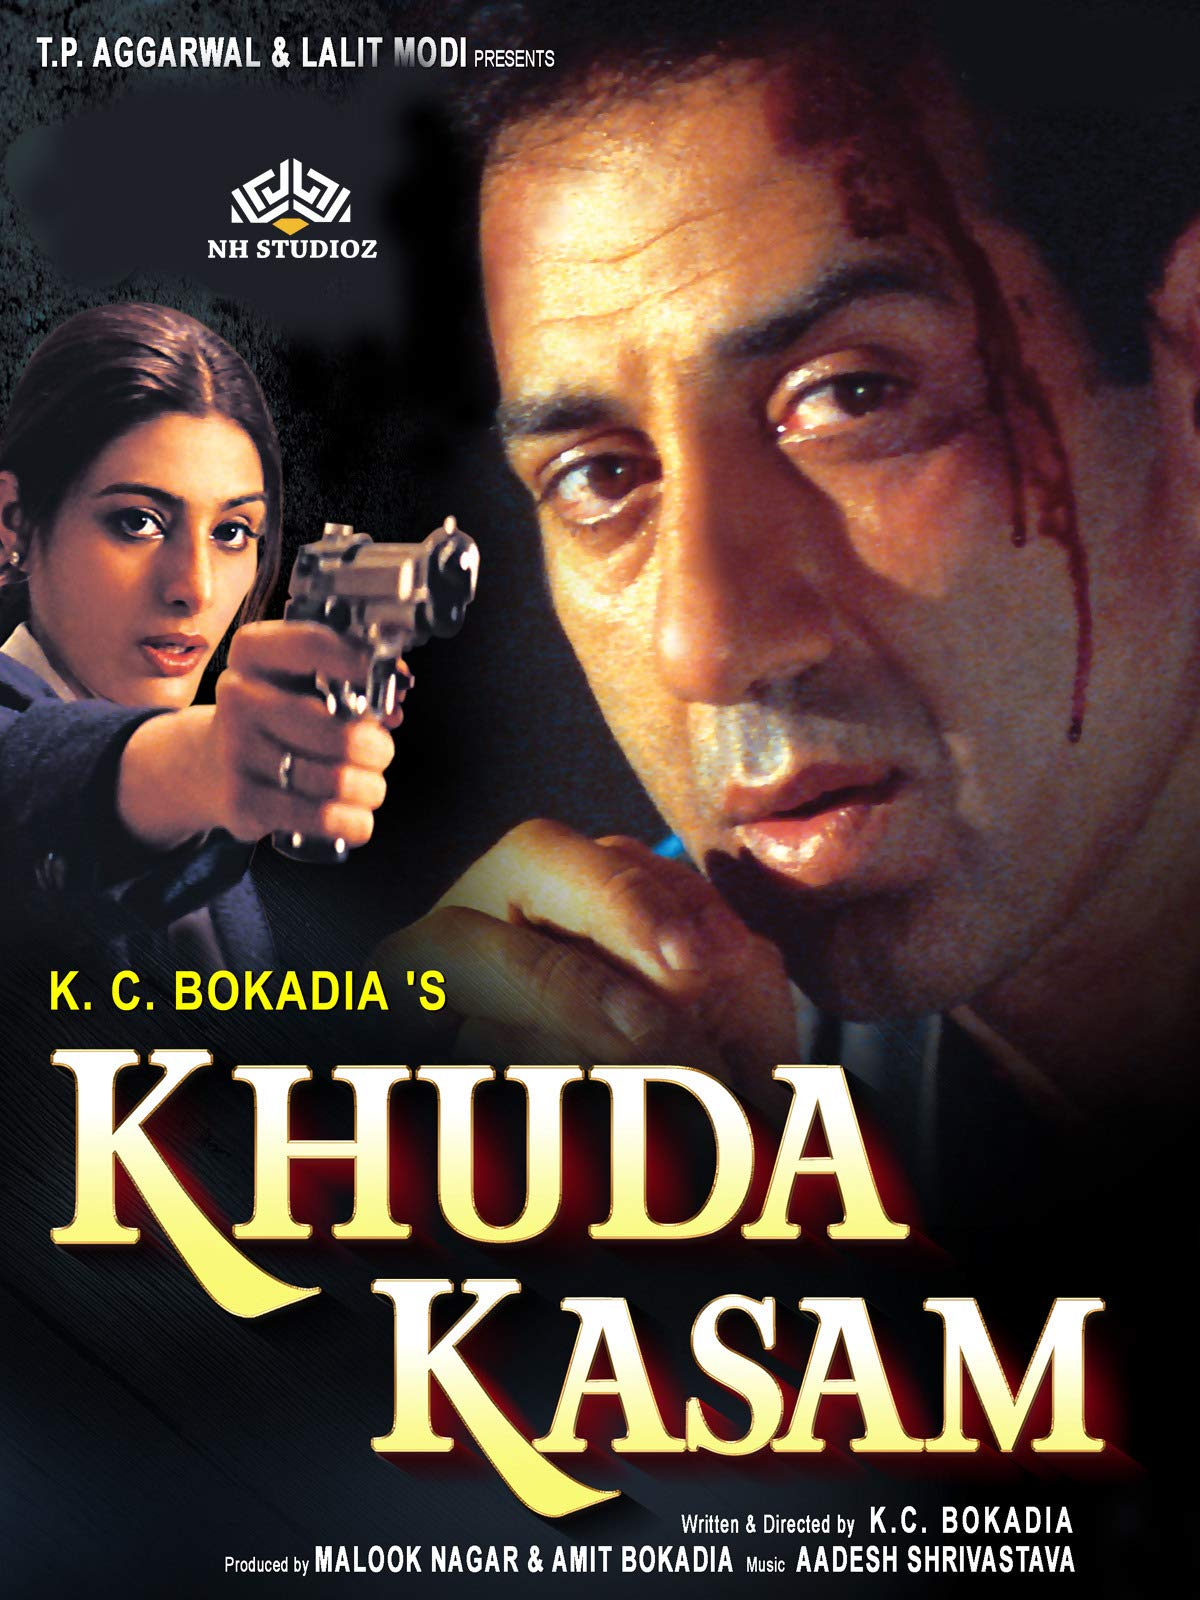 Khuda kasam on Amazon Prime Video UK